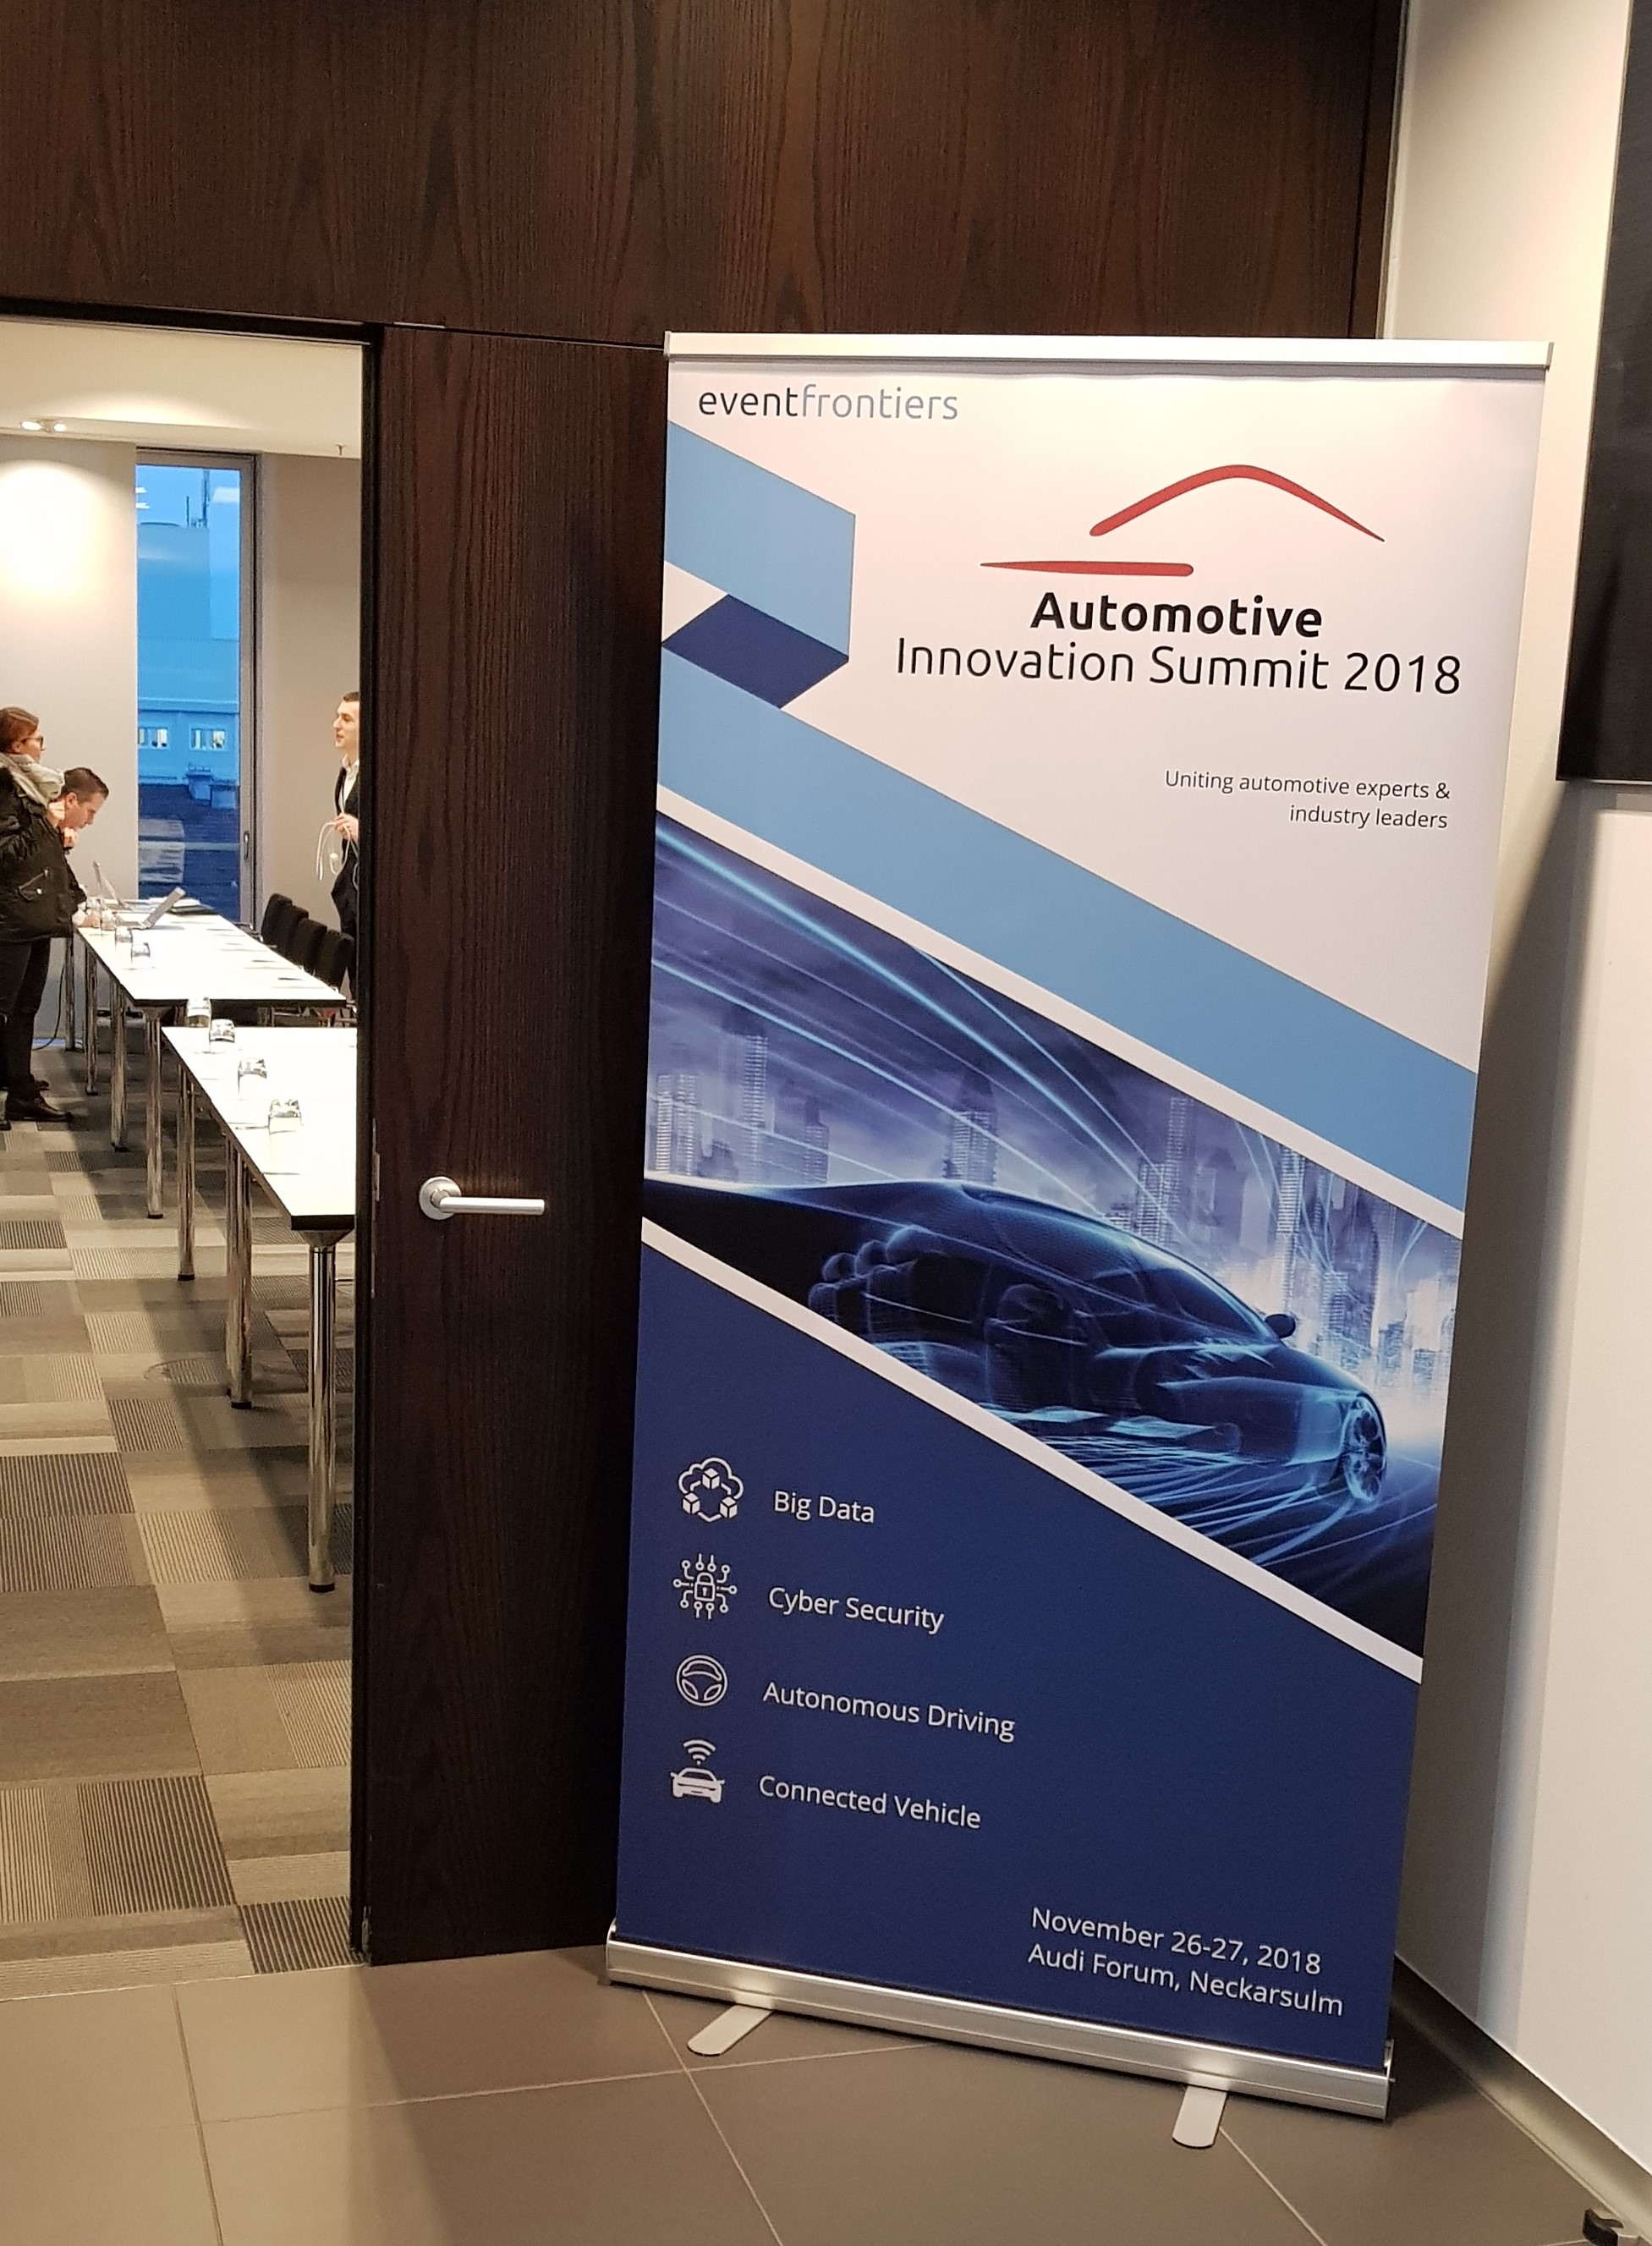 Automotive_Summit_112018.jpg